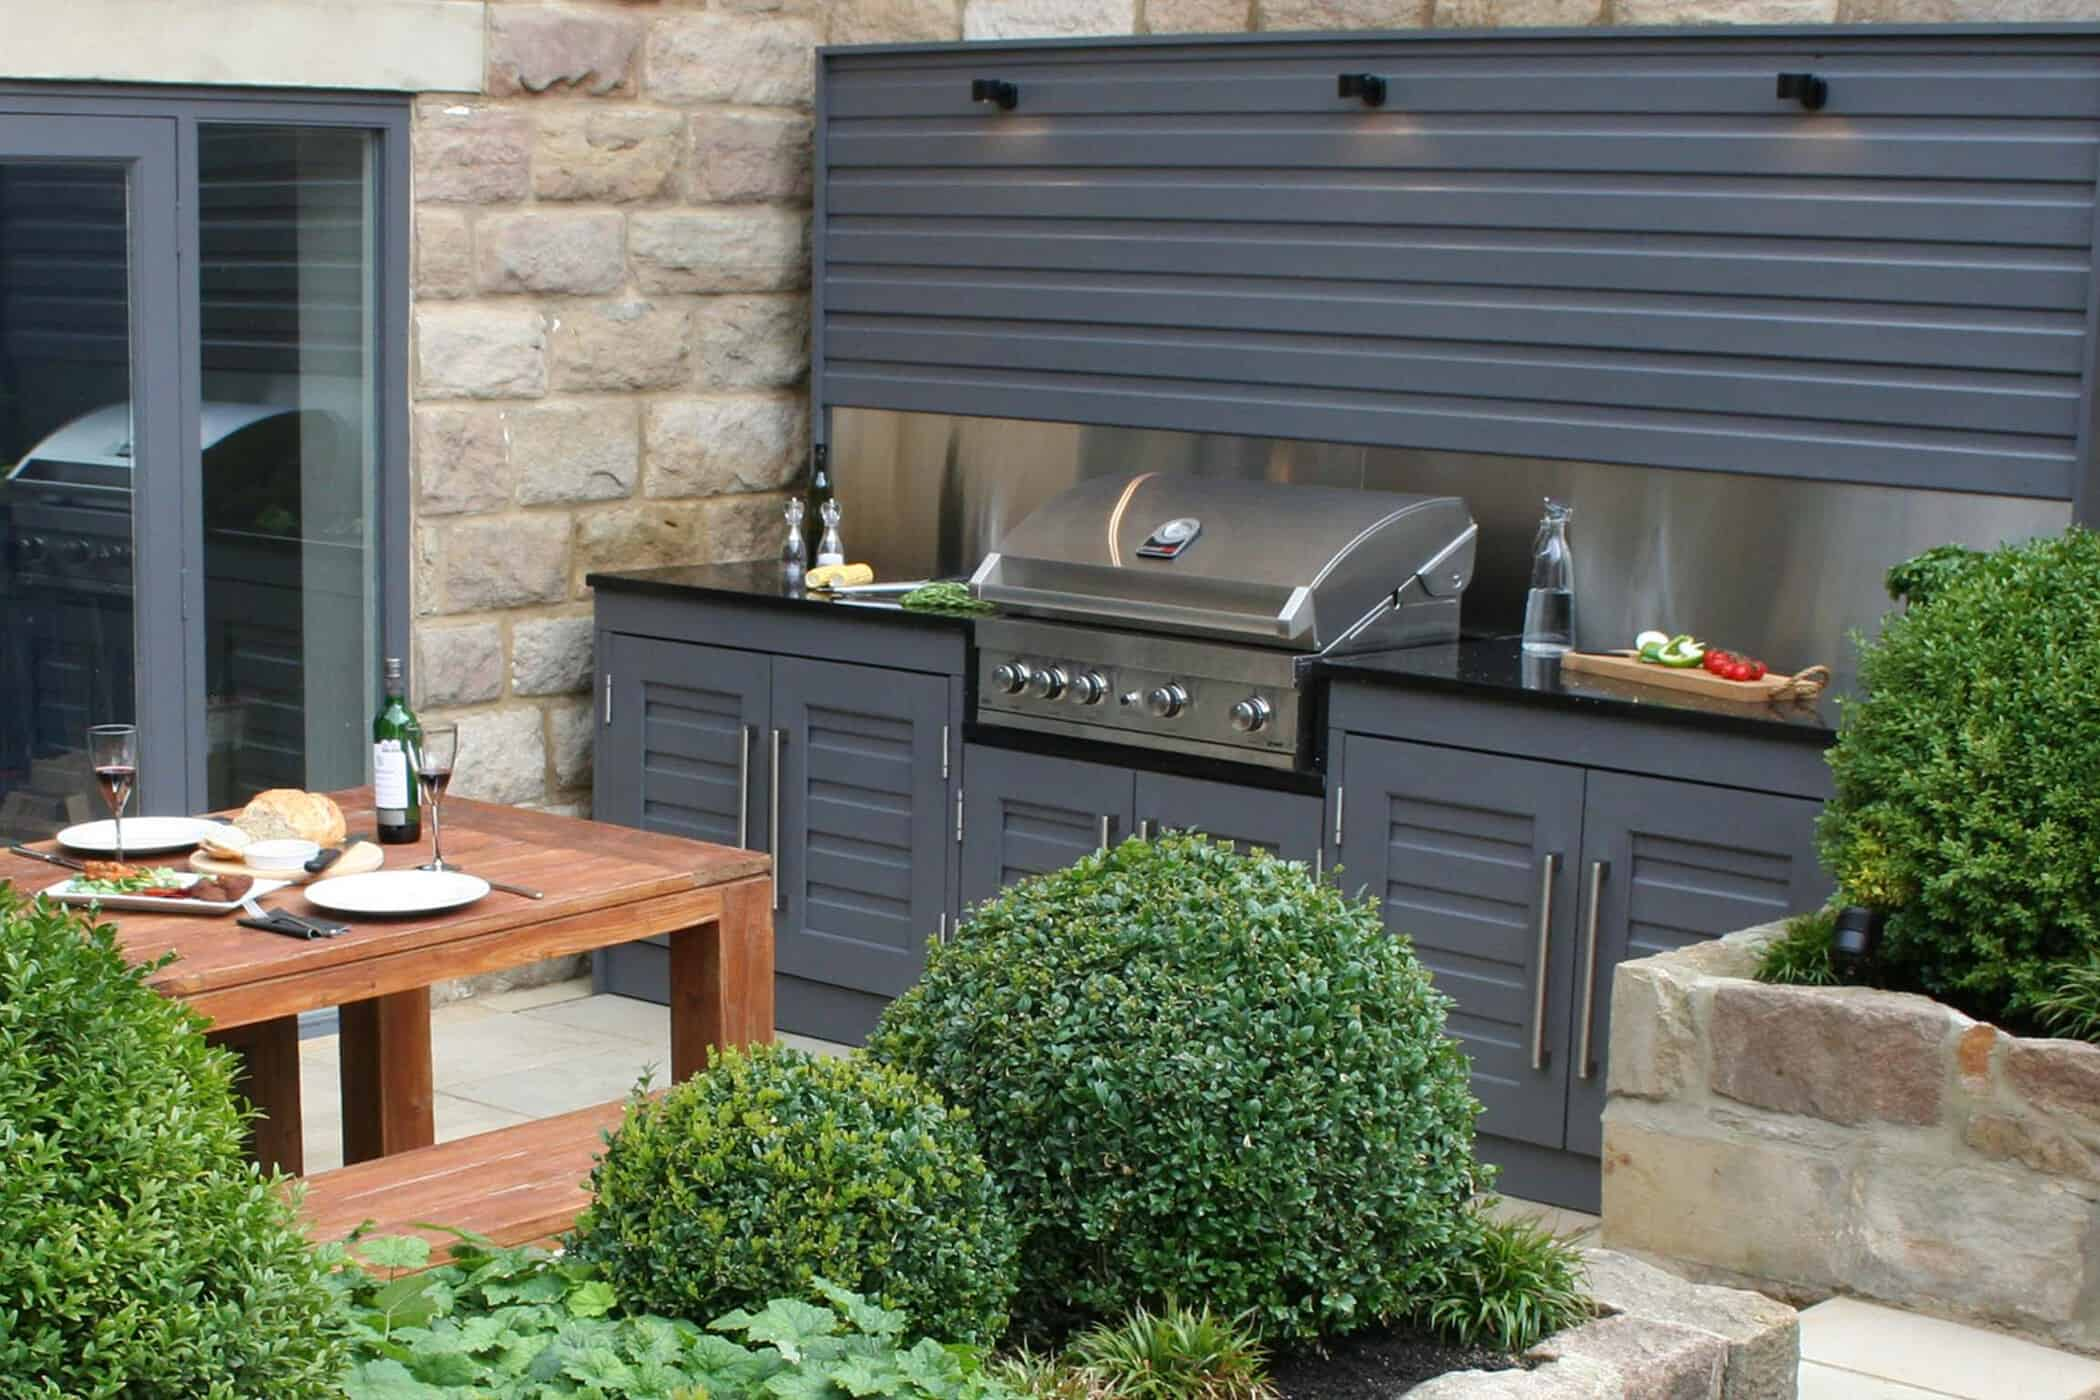 Outdoor Kitchen, Bestall amp; Co, Garden design,BBQ